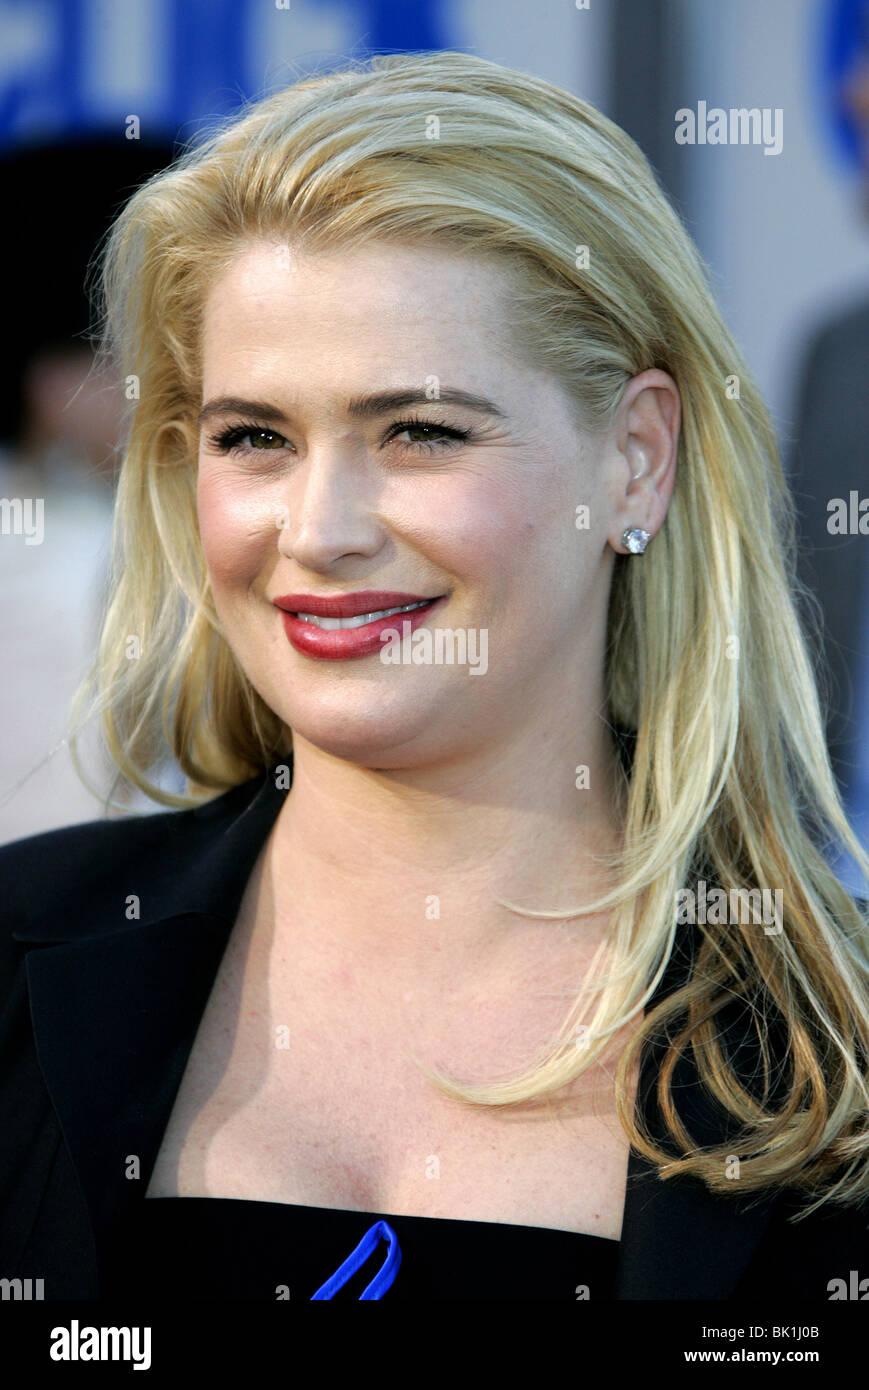 KRISTY SWANSON CLICK FILM PREMIERE WESTWOOD LOS ANGELES USA 14 June 2006 - Stock Image